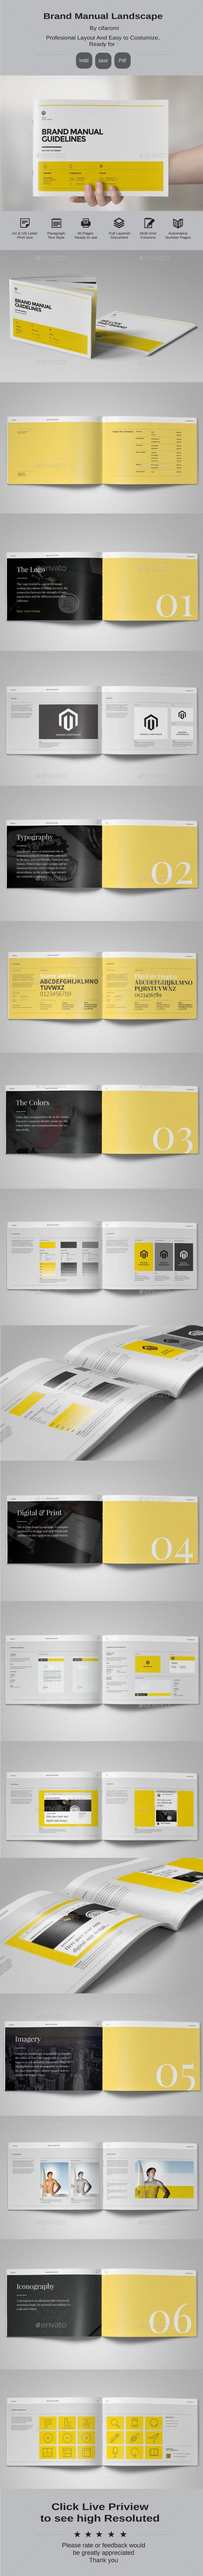 Minimal and Professional Brand Manual Landscape Brochure Template InDesign INDD #design Download: graphicriver.net/...